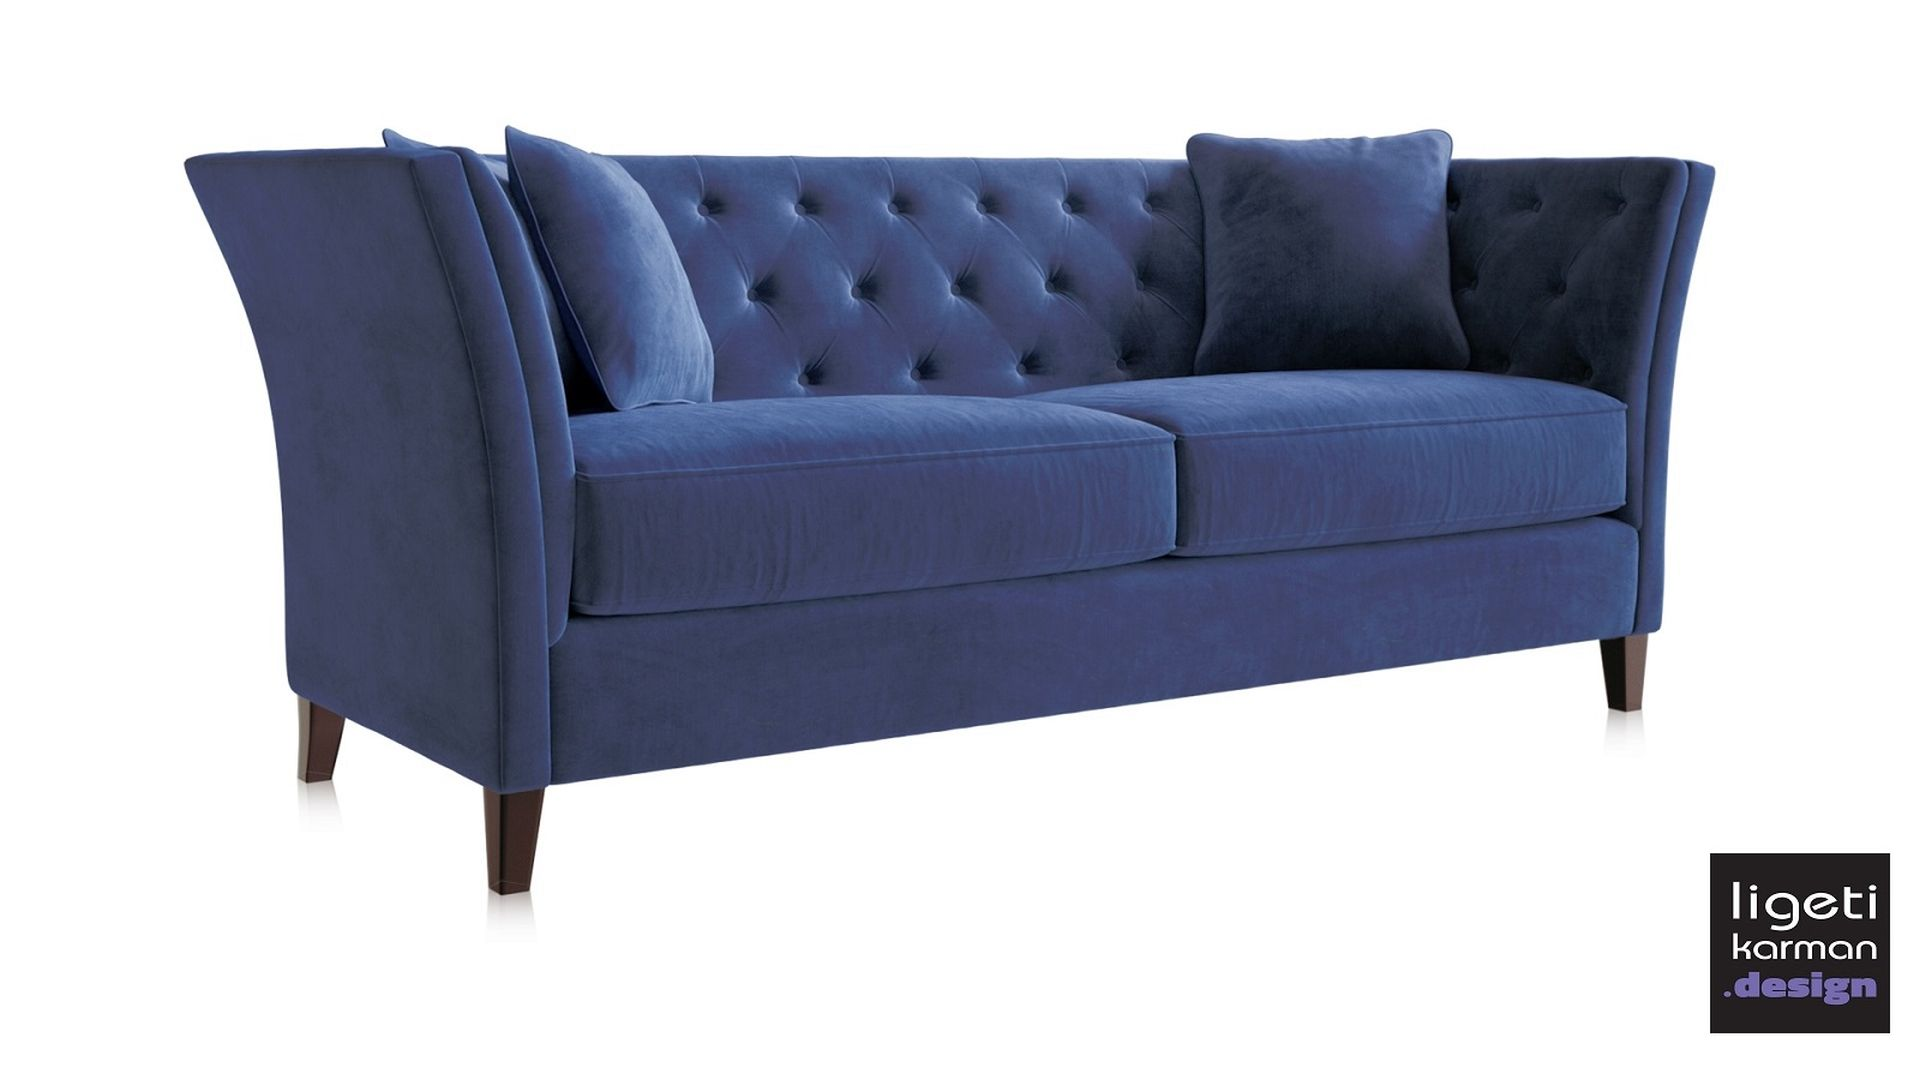 miotto_Amiato sofa blue t miotto design furniture